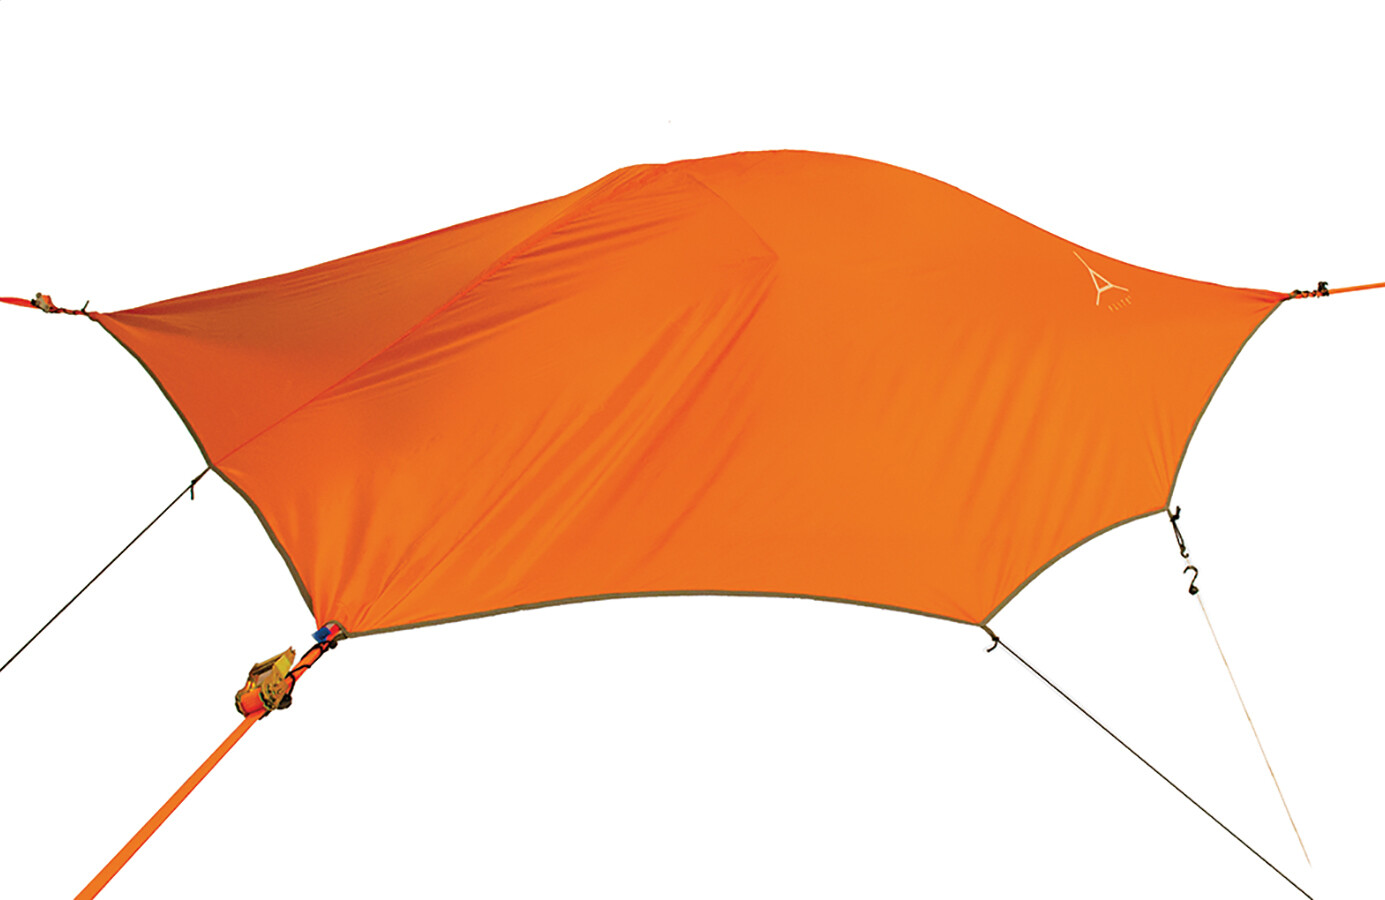 Tentsile Flite+ Telt, orange (2019) | Misc. Transportation and Storage